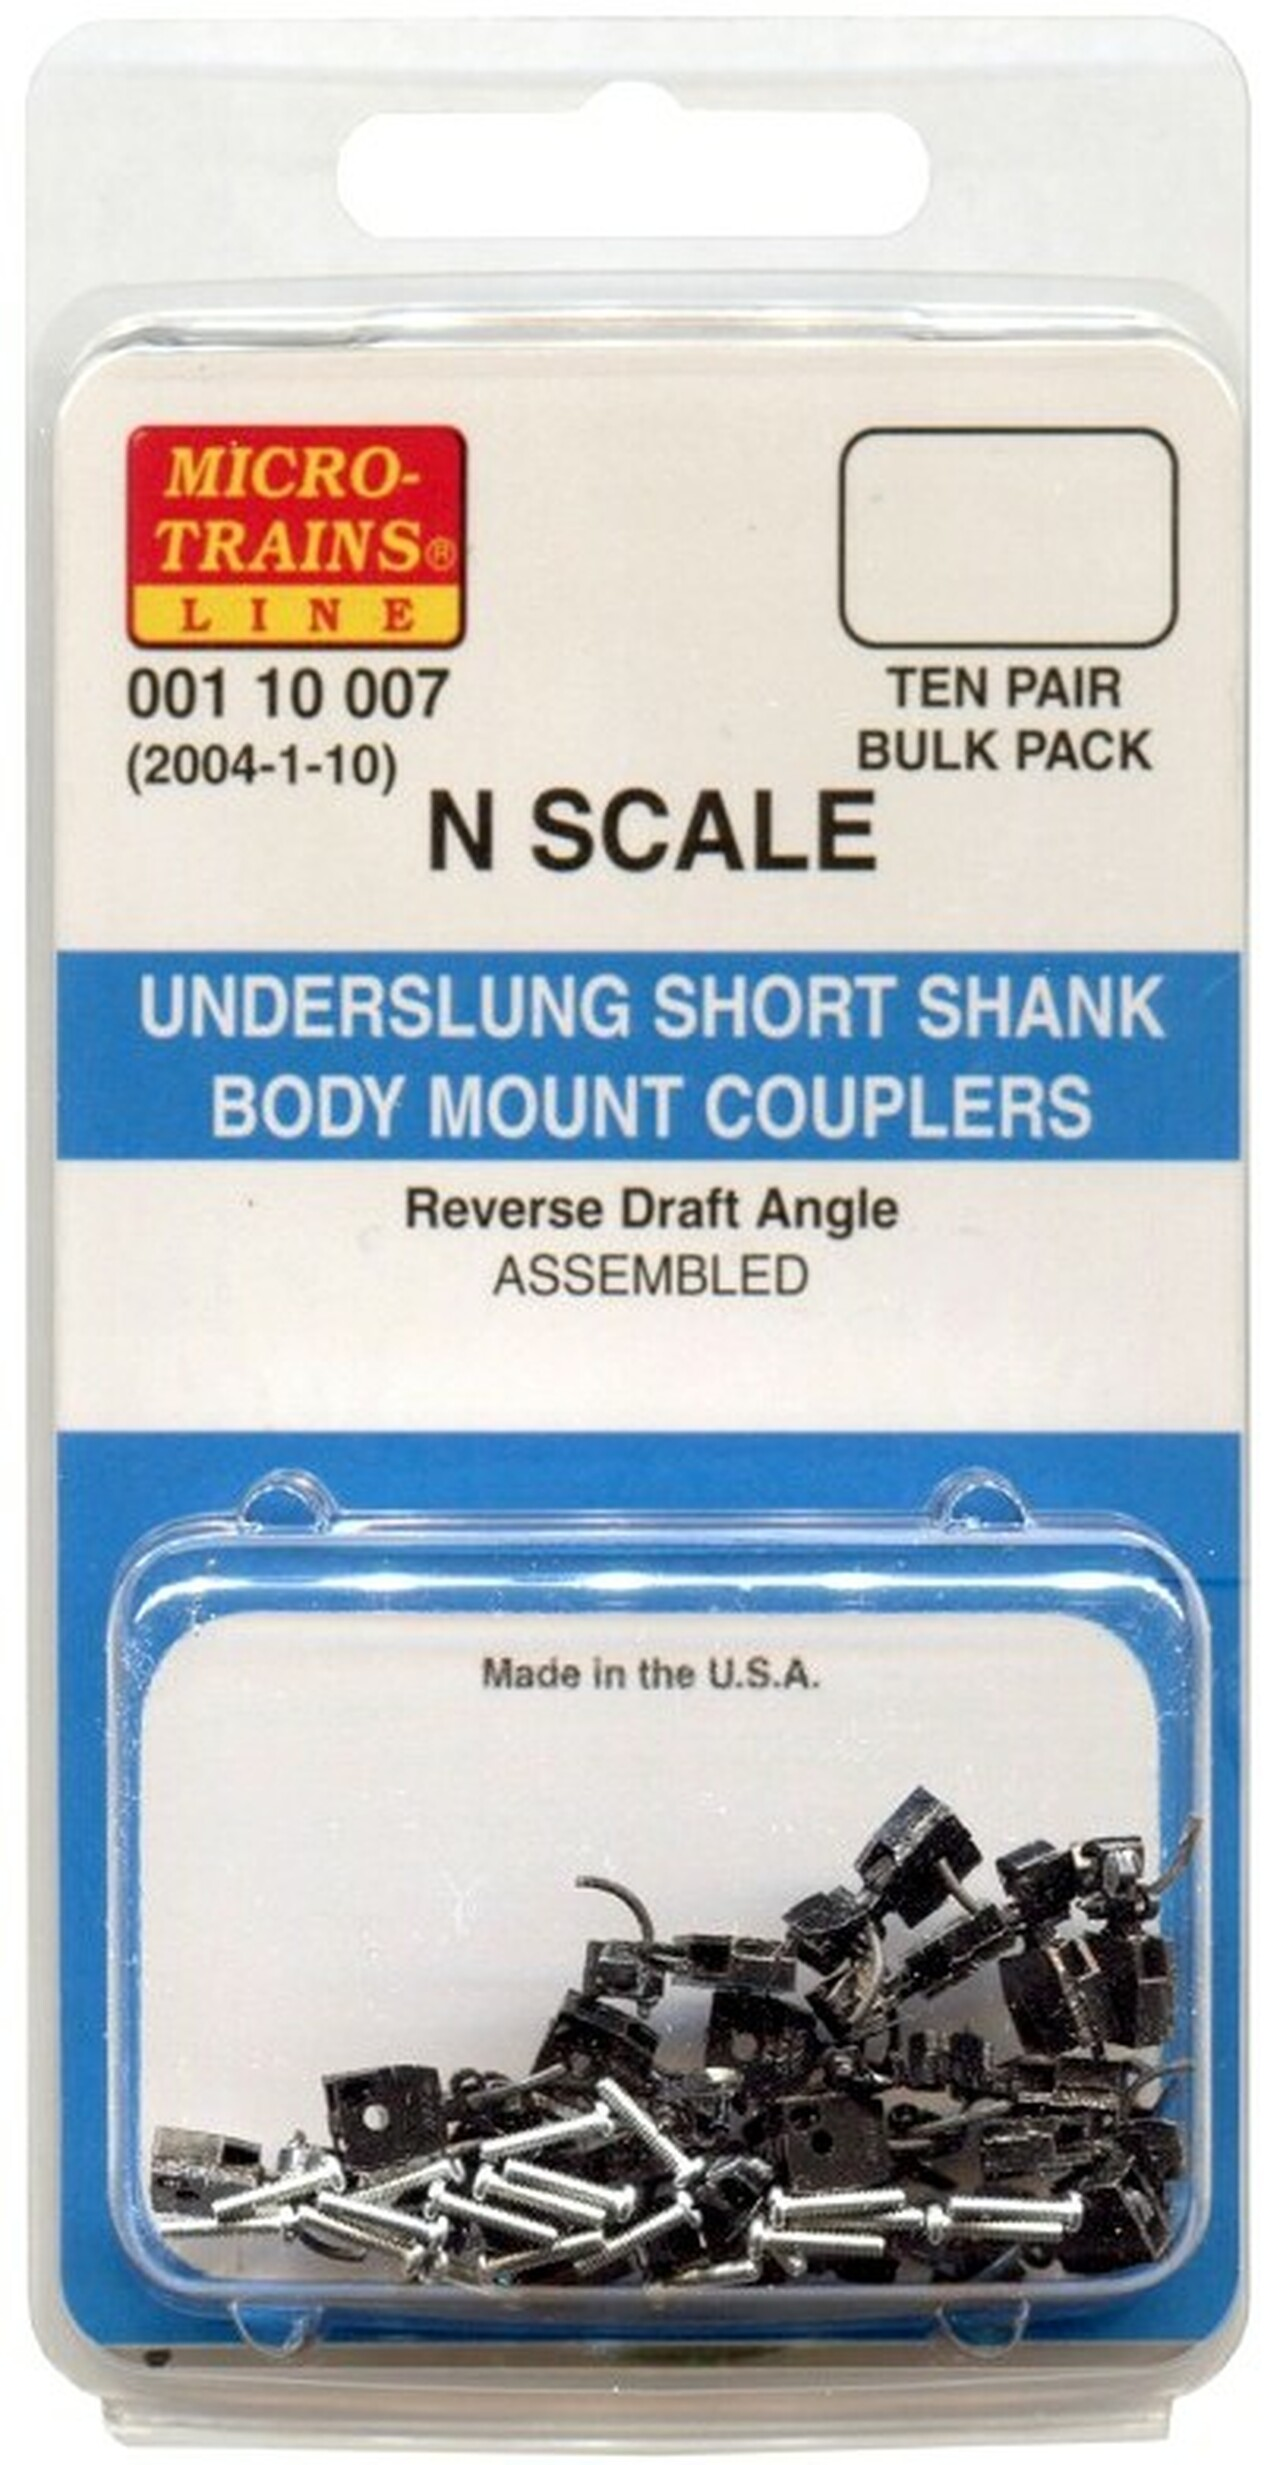 N Scale - Micro-Trains - 2004-1-10 - Couplers, Short Shank - Undecorated - Underslung Short Shank Body Mount